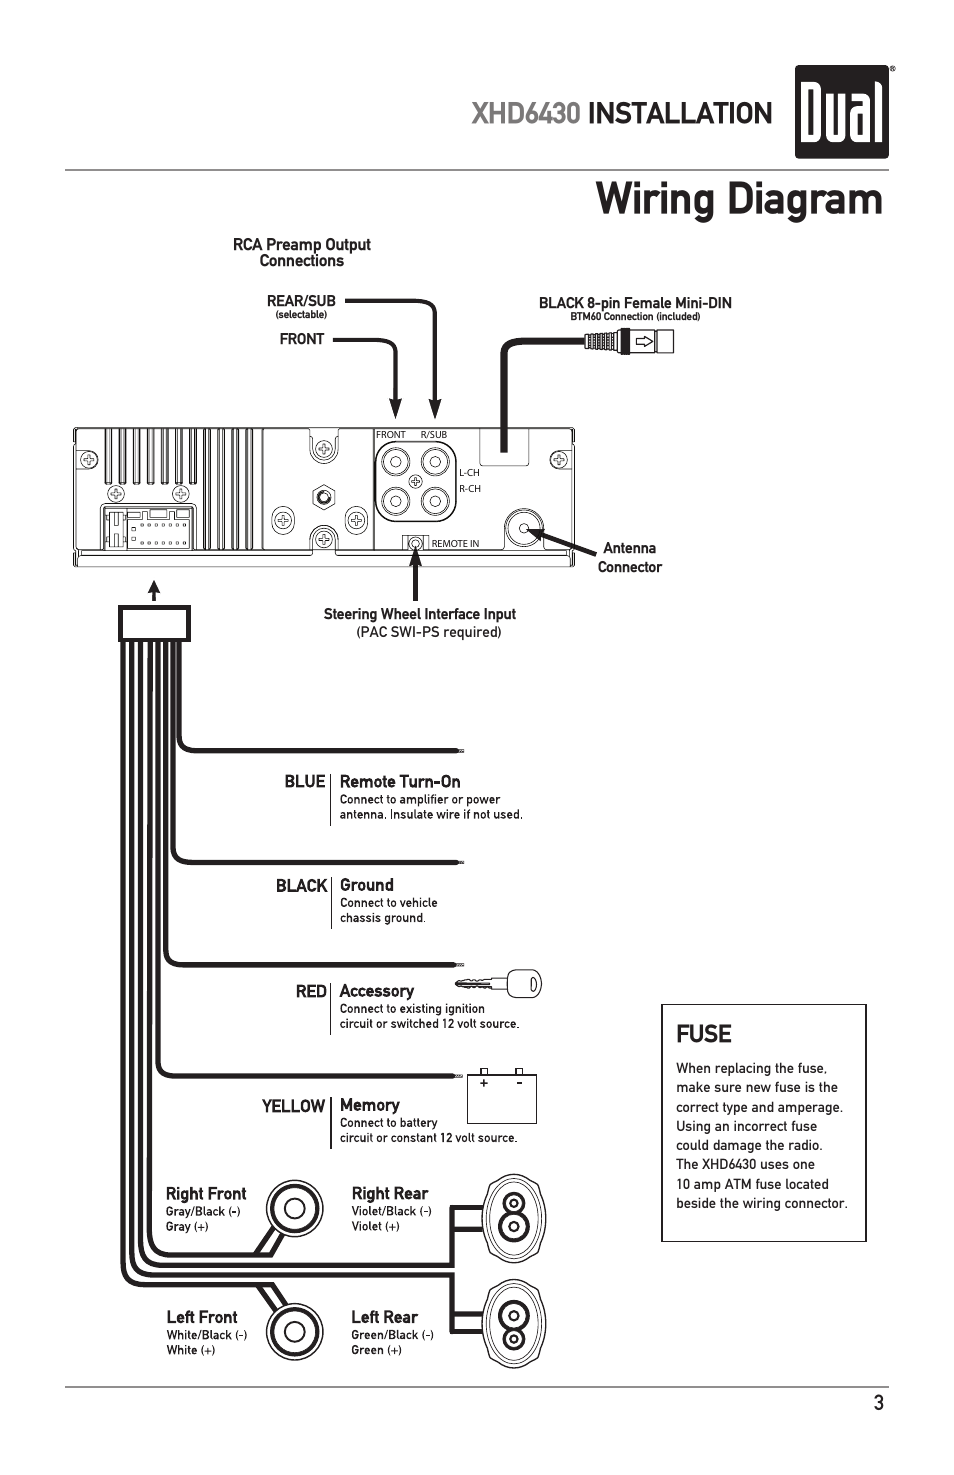 aheadset install diagram